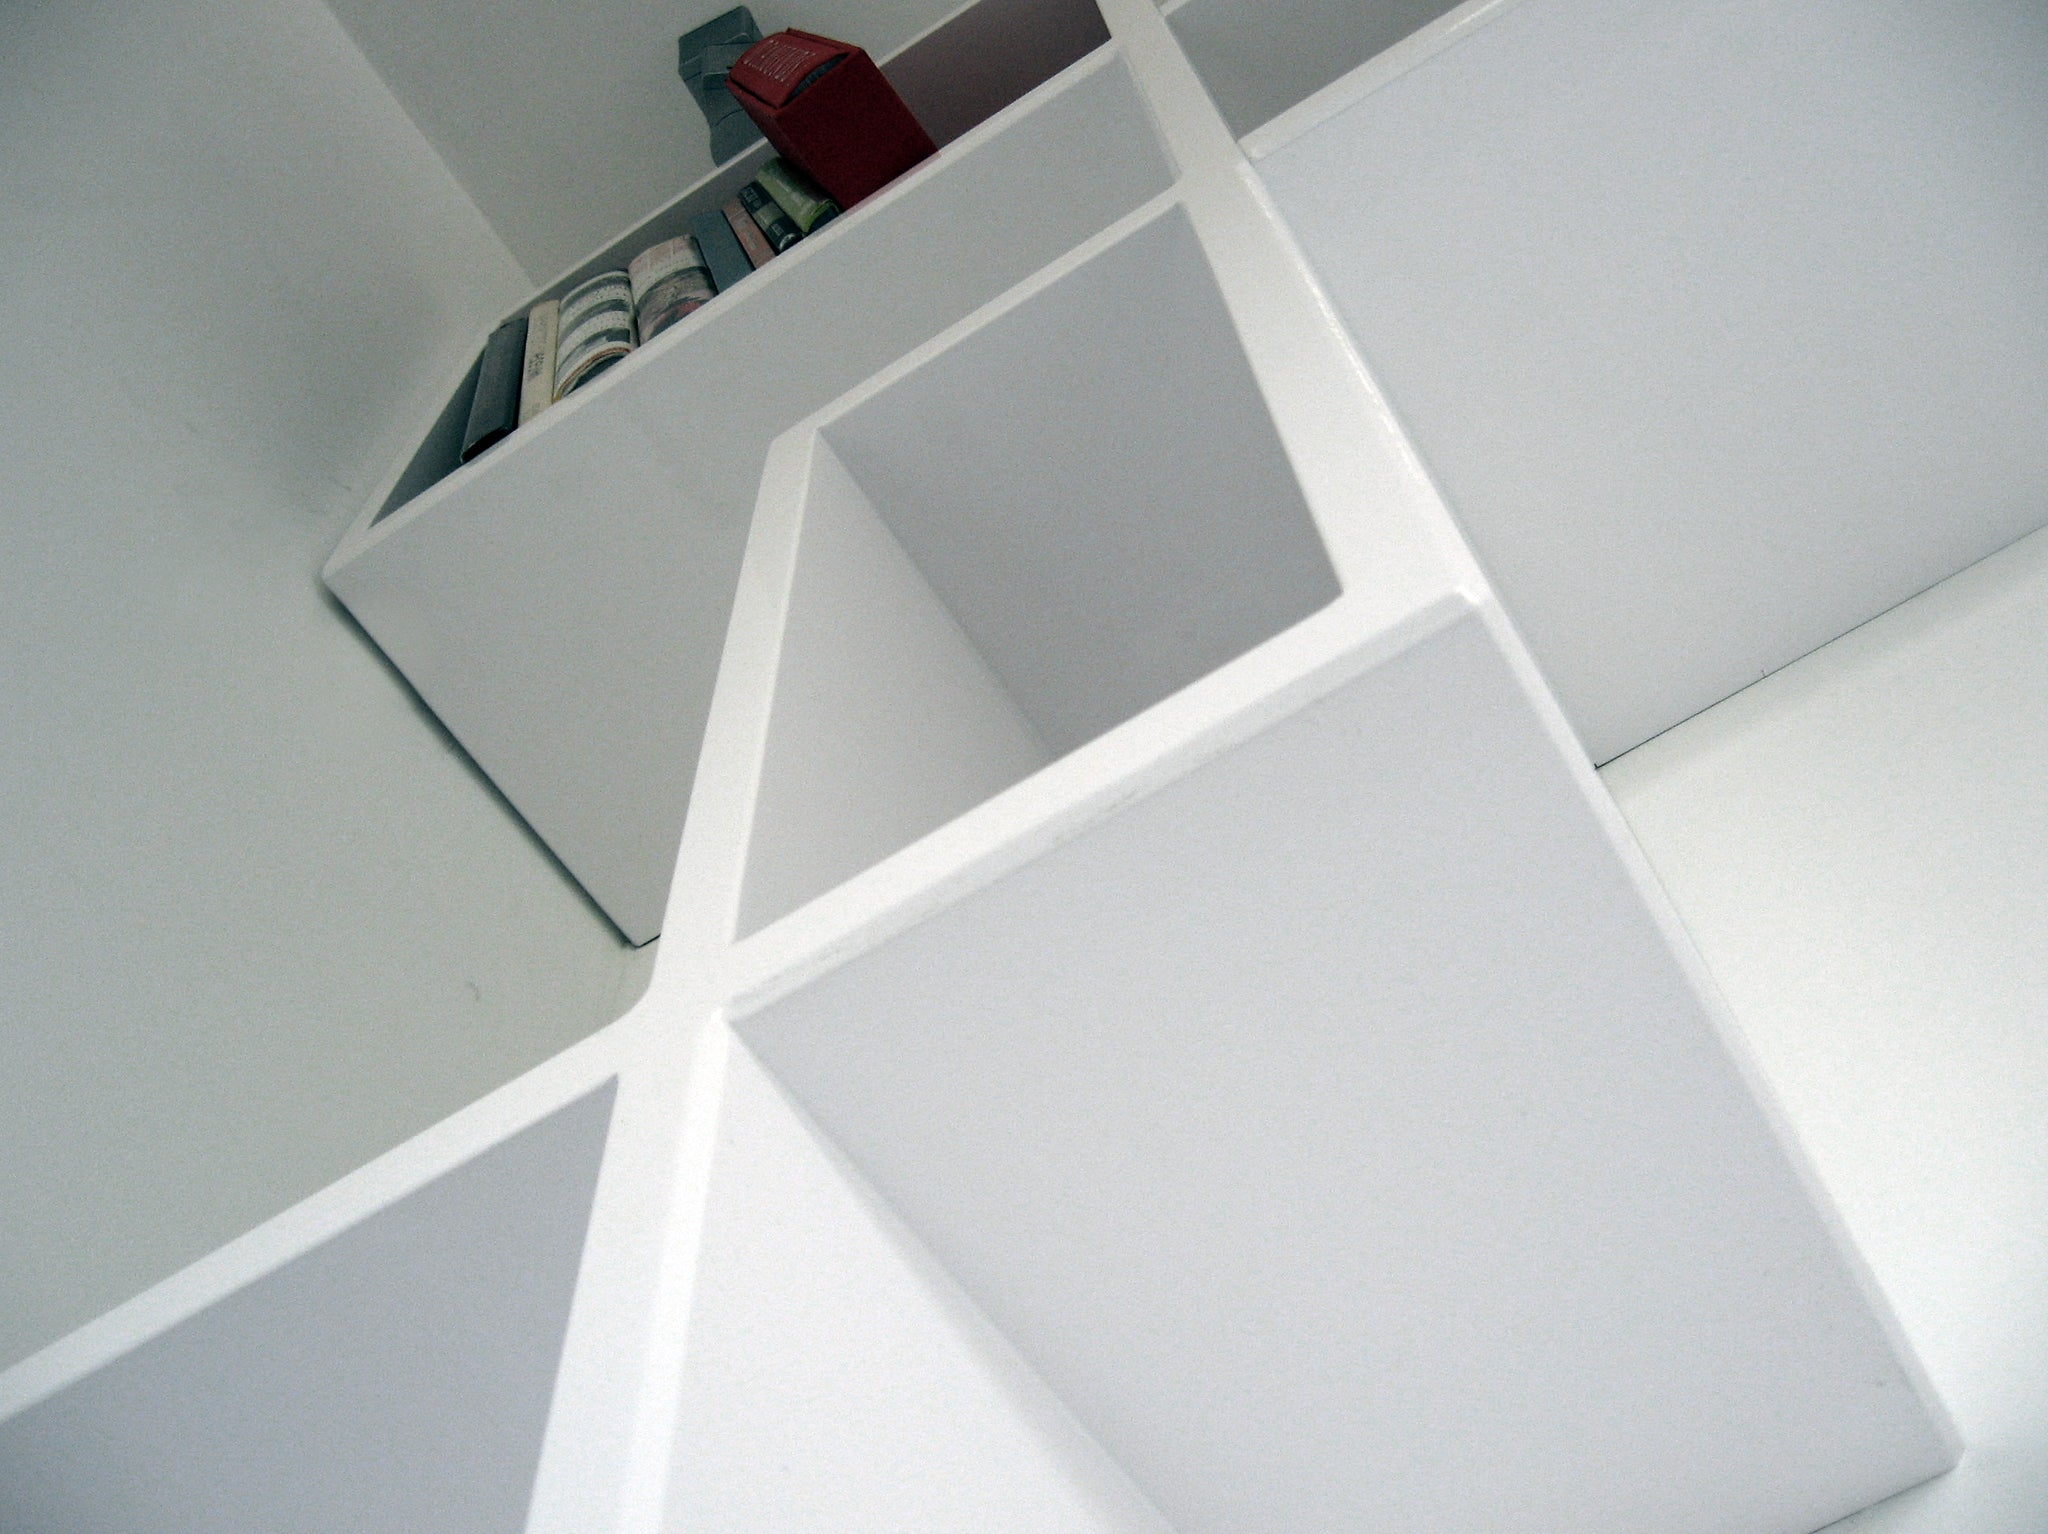 Customized bookshelf - detail